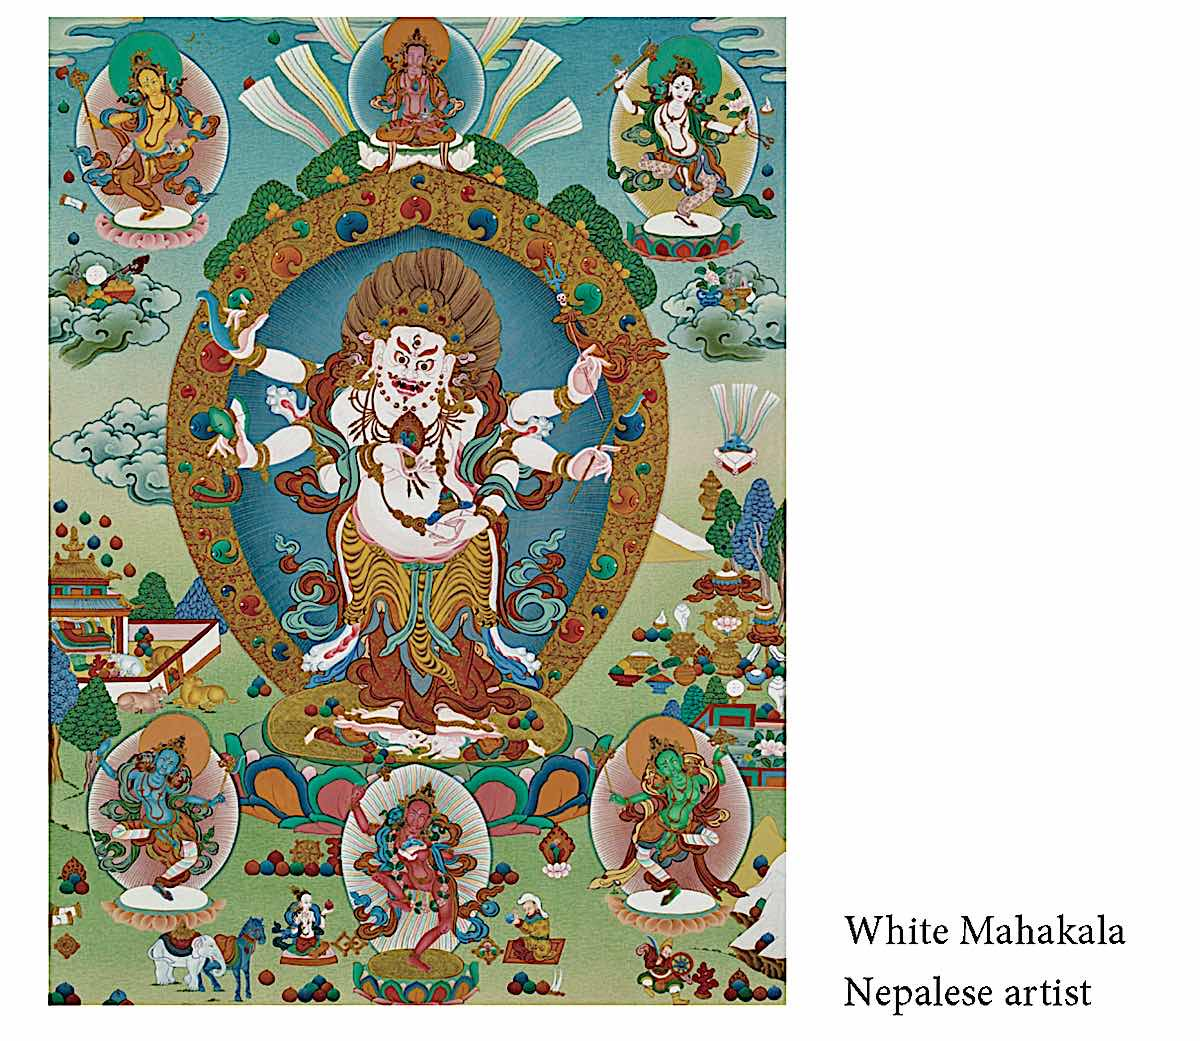 Buddha Weekly White Mahakala by a Nepalese Artist in the Source of all Protectors book Buddhism